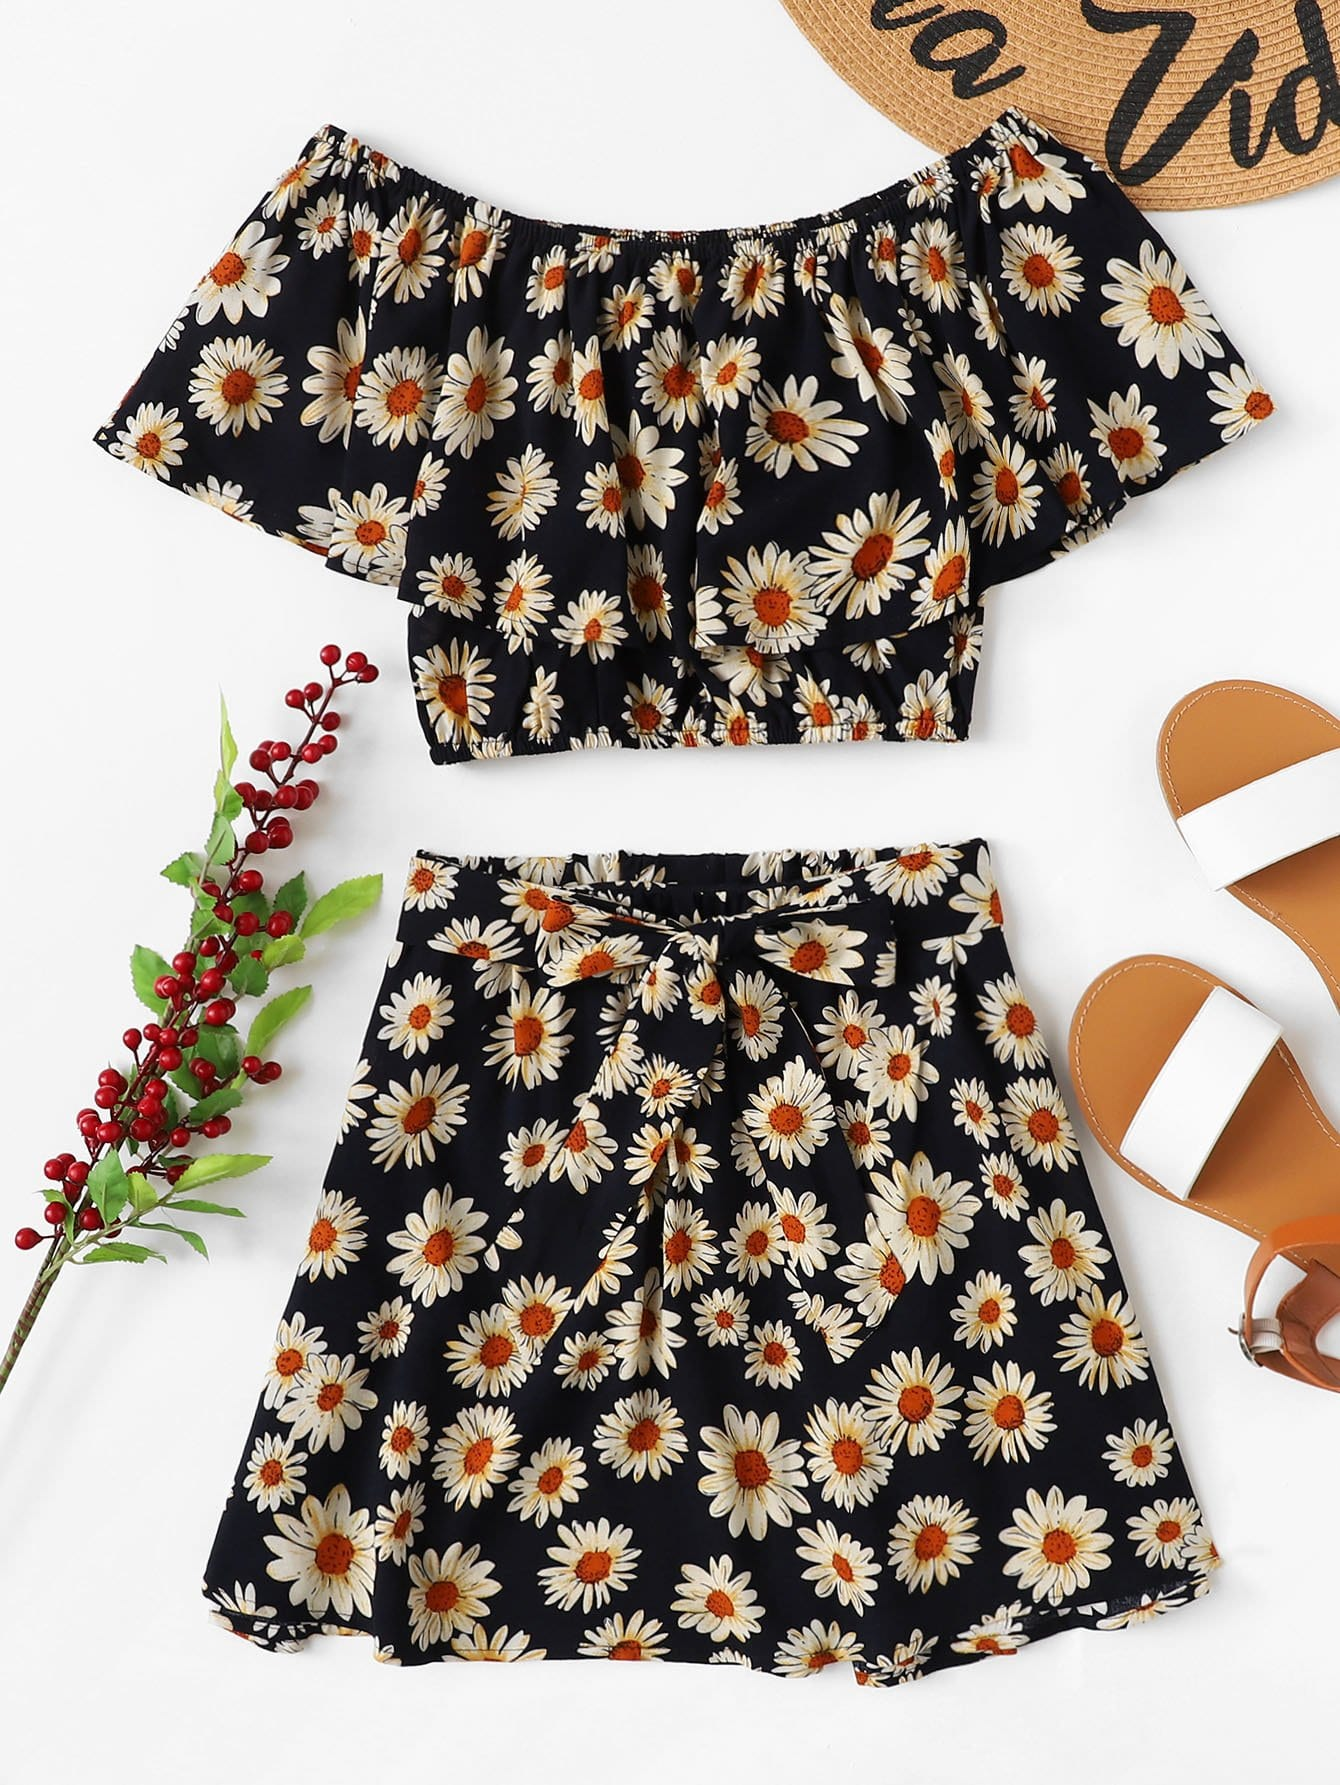 Daisy Print Flounce Bardot Top & Skirt Set flounce light up cosplay skirt